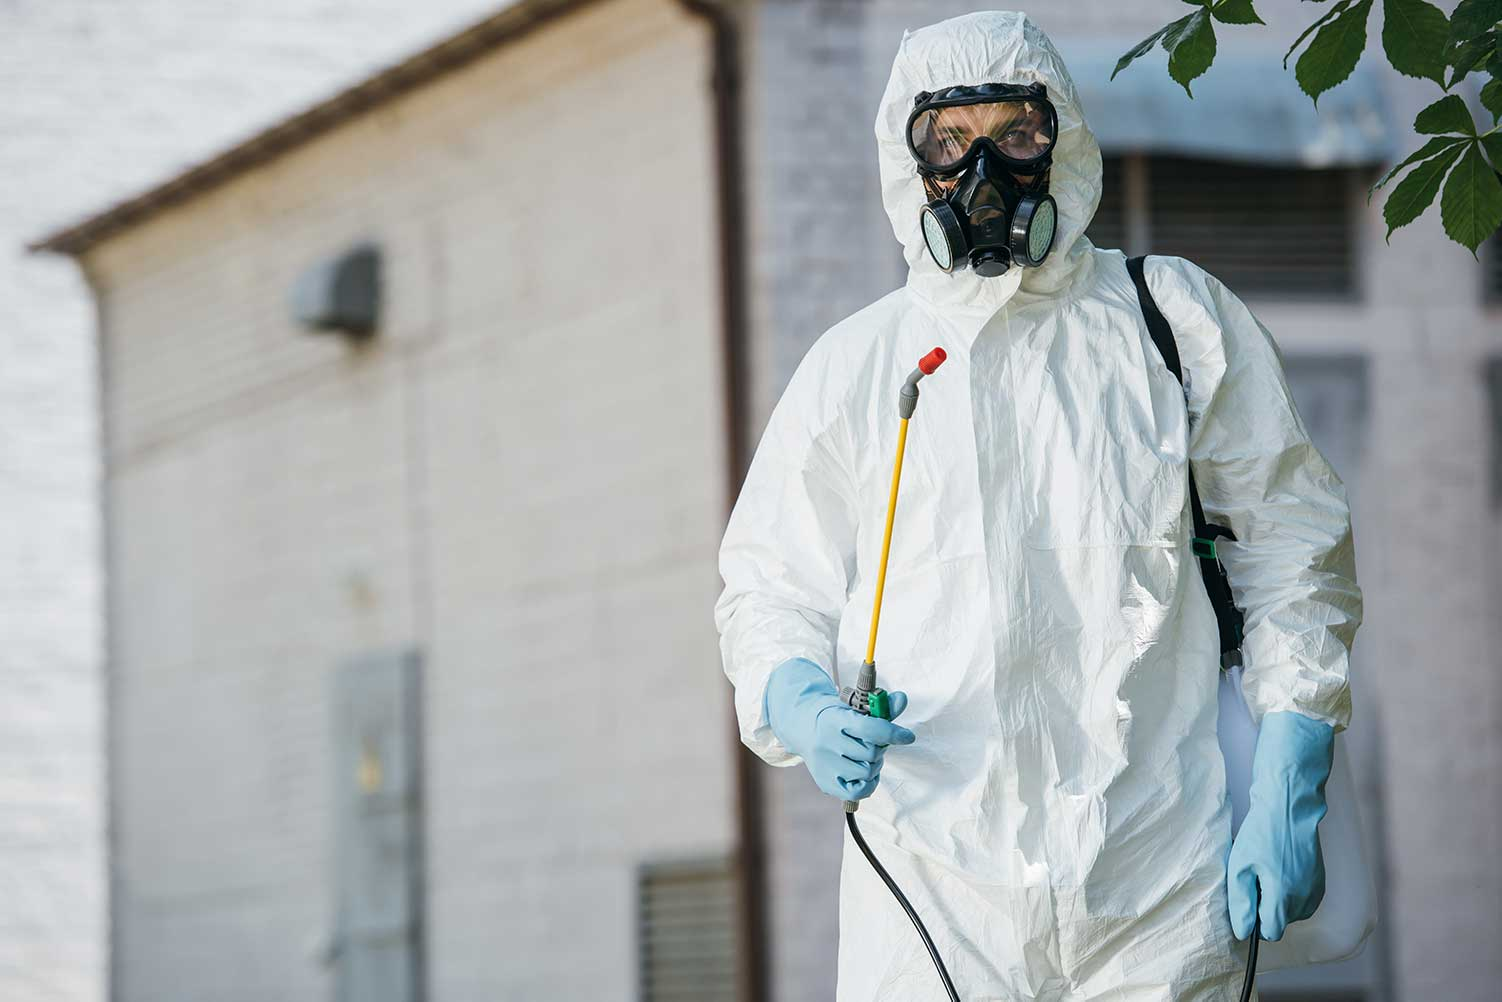 wasp nest removal experts in Kitchener